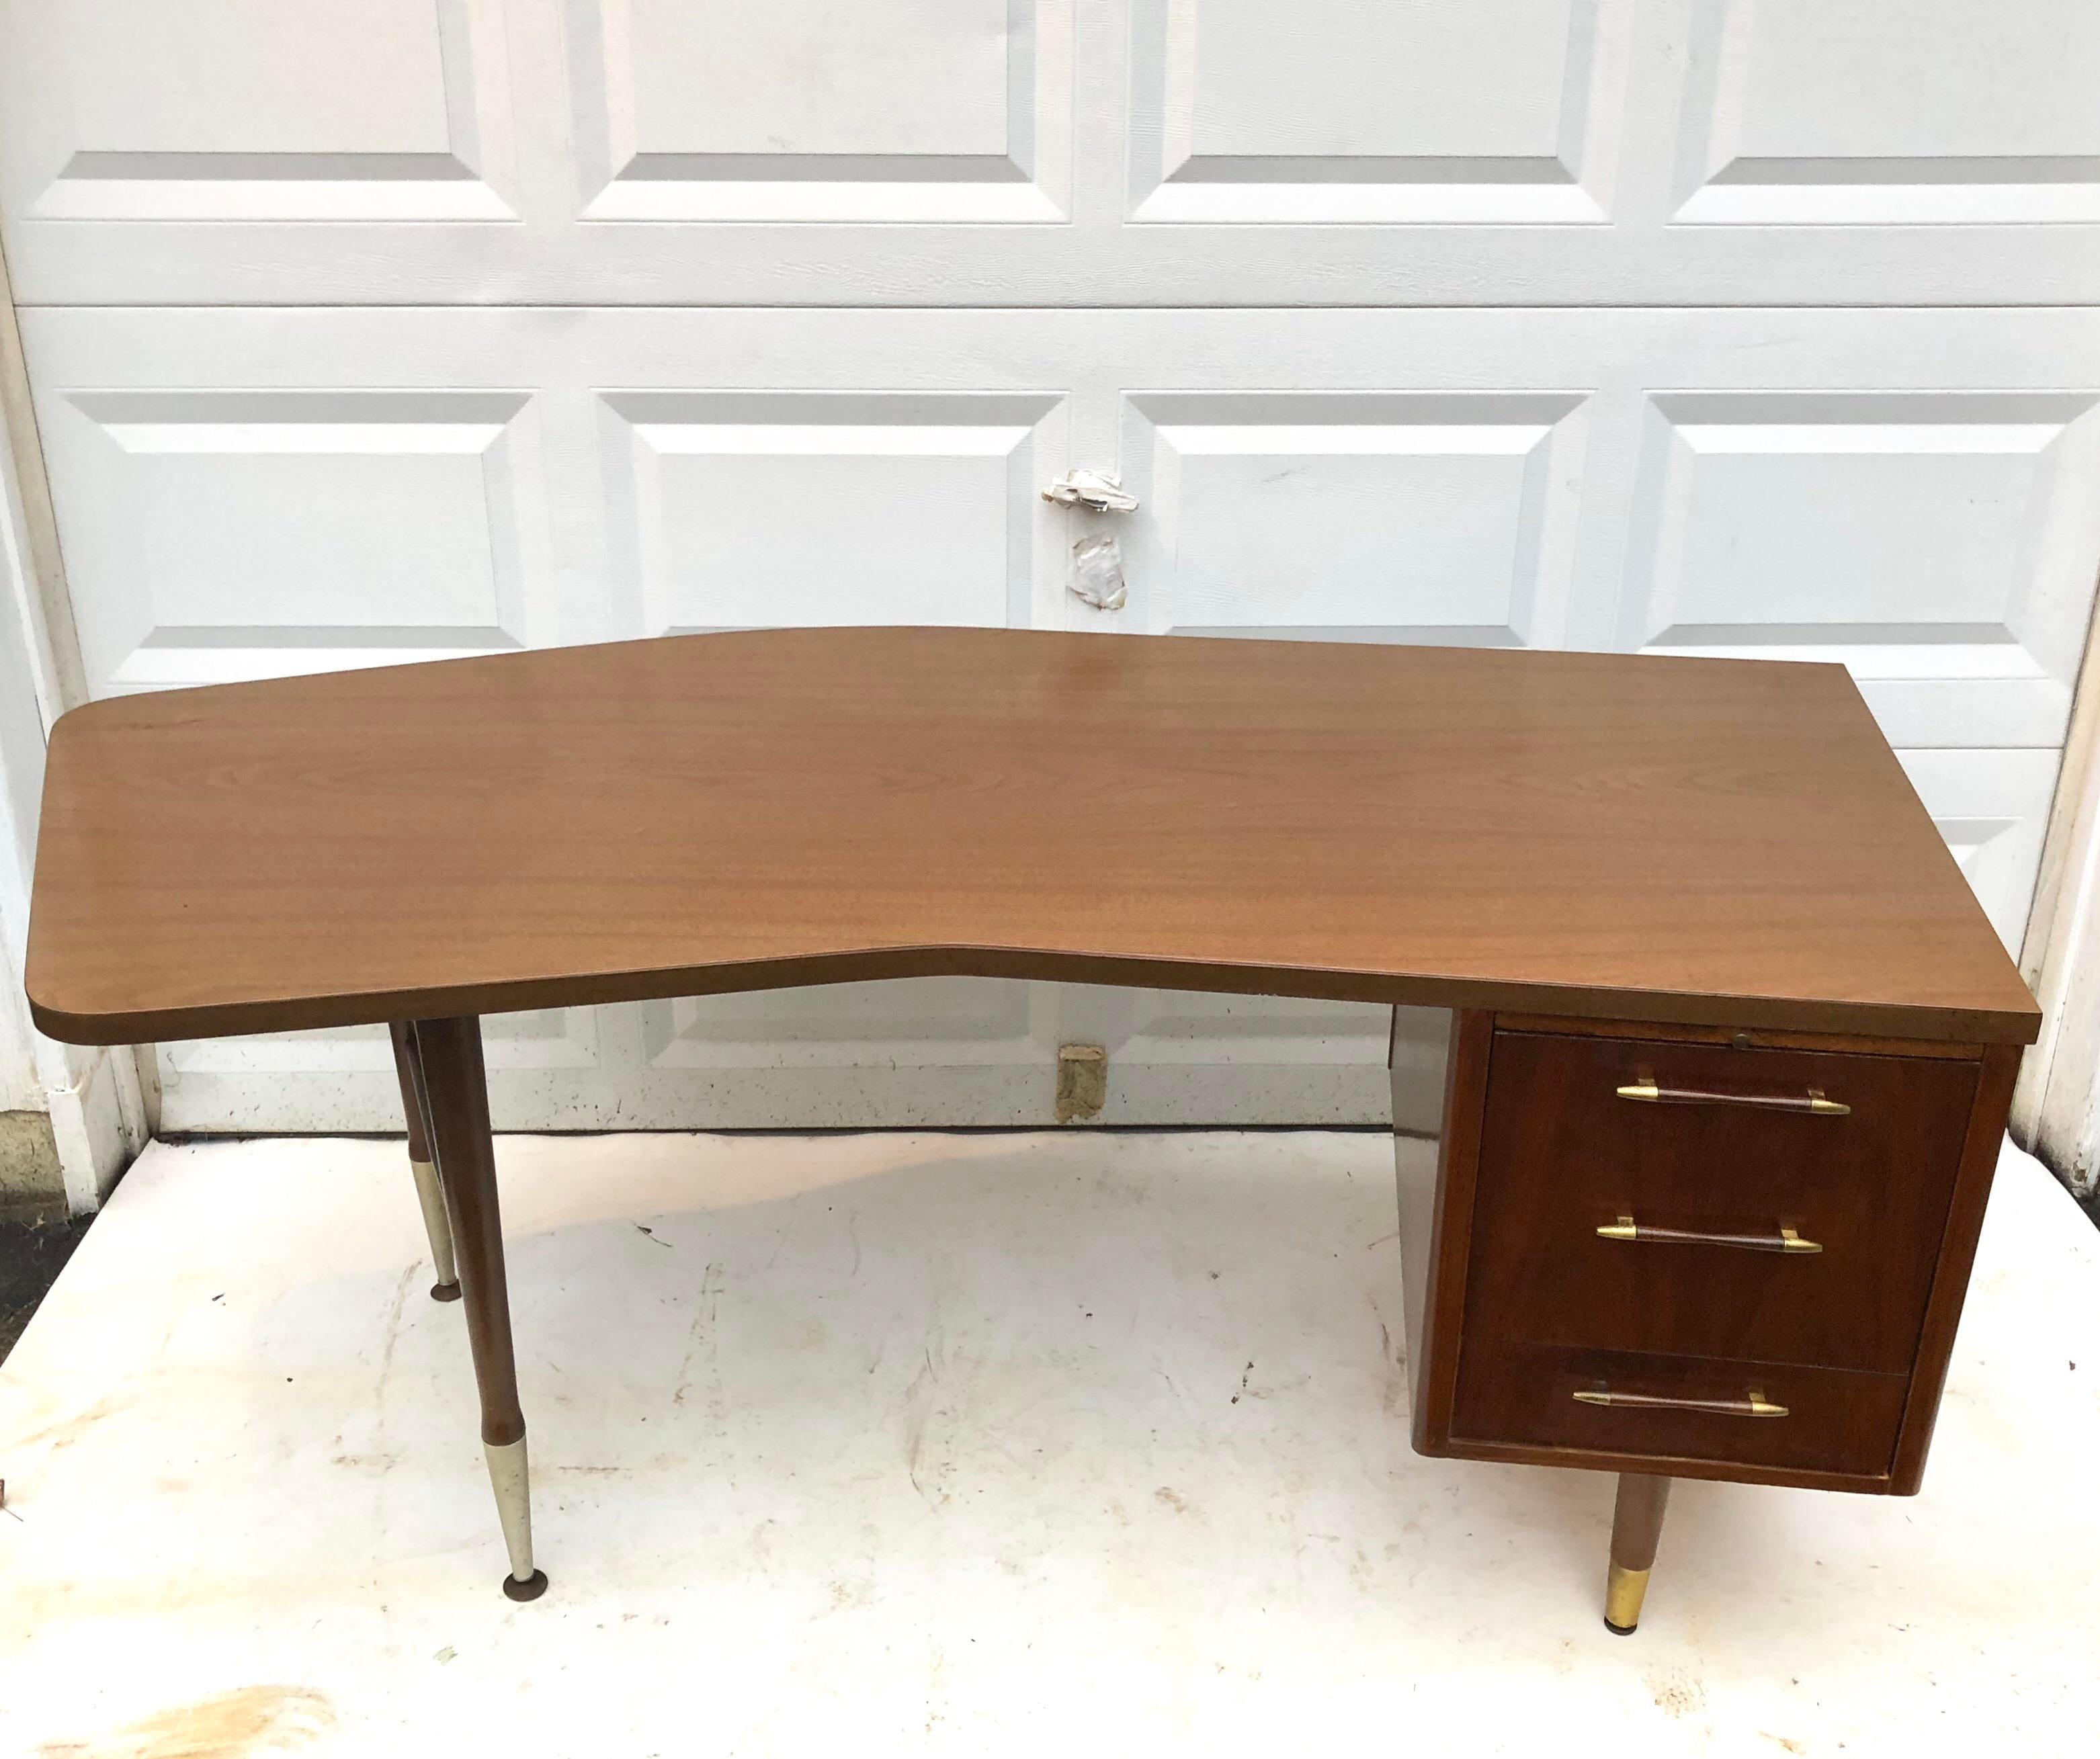 Ordinaire This Large Vintage Desk Features Mid Century Style And A Spacious  Workspace. Durable Laminate Top